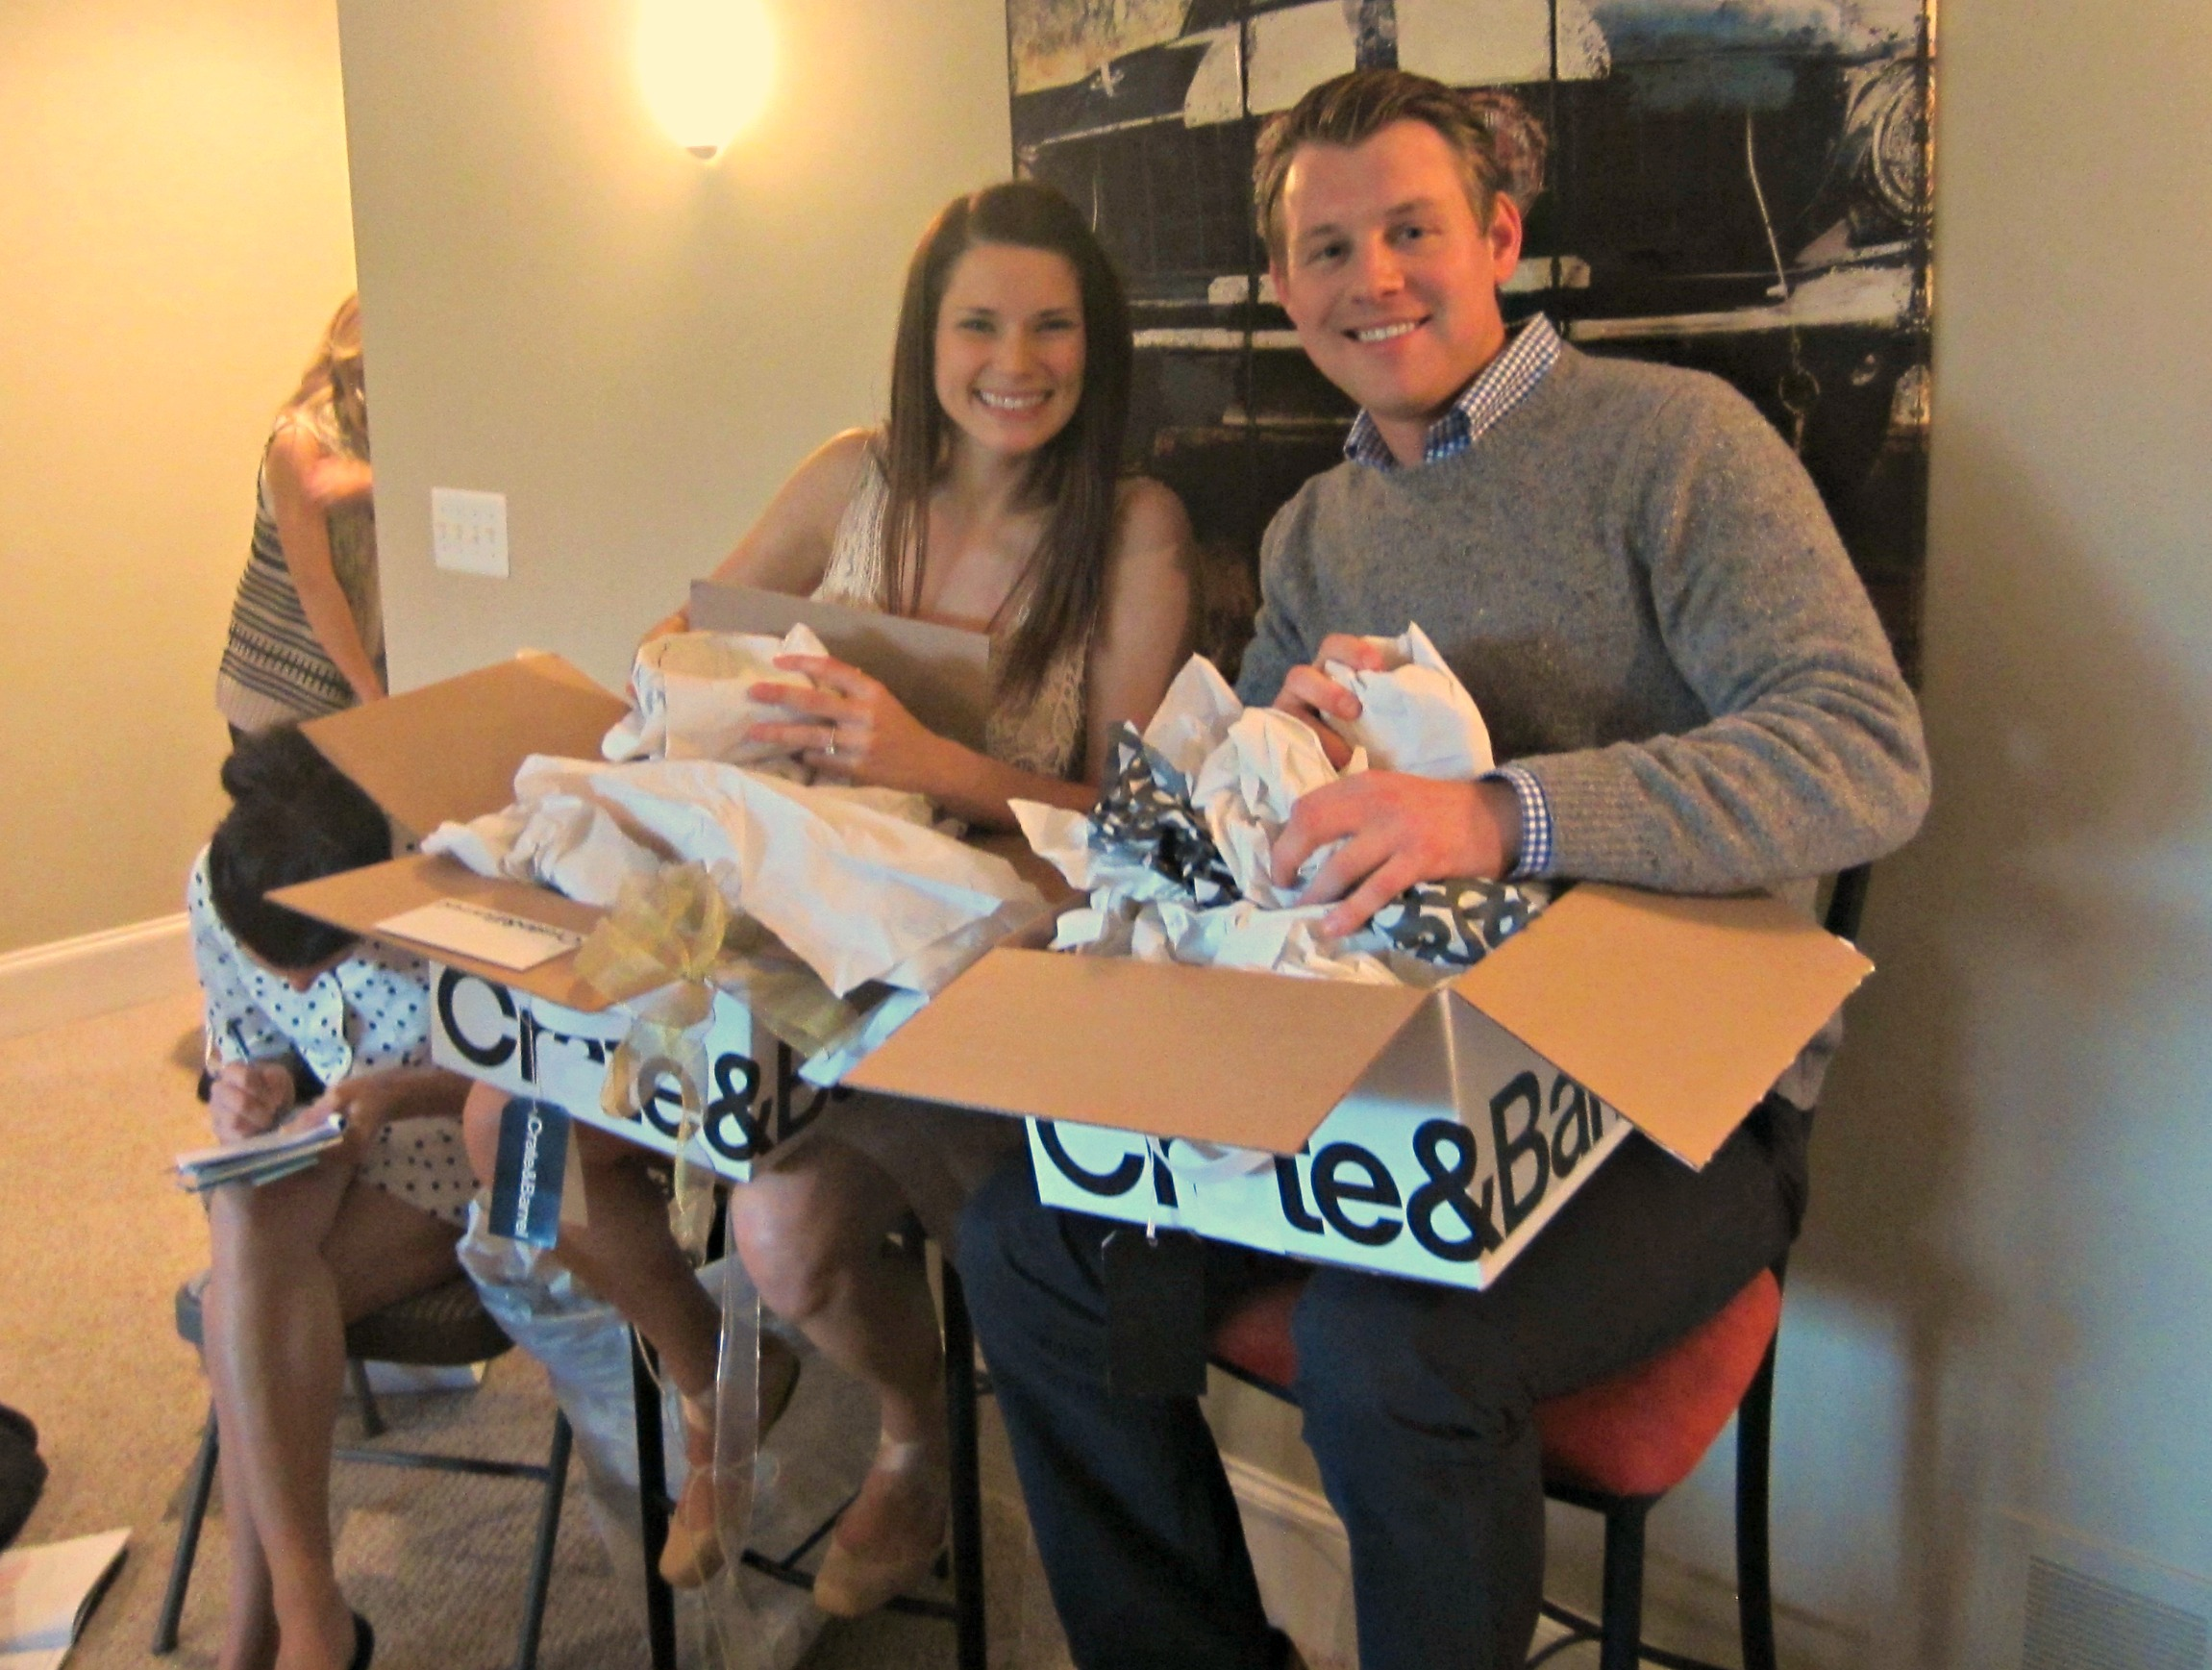 alex and alex opening bridal shower gifts